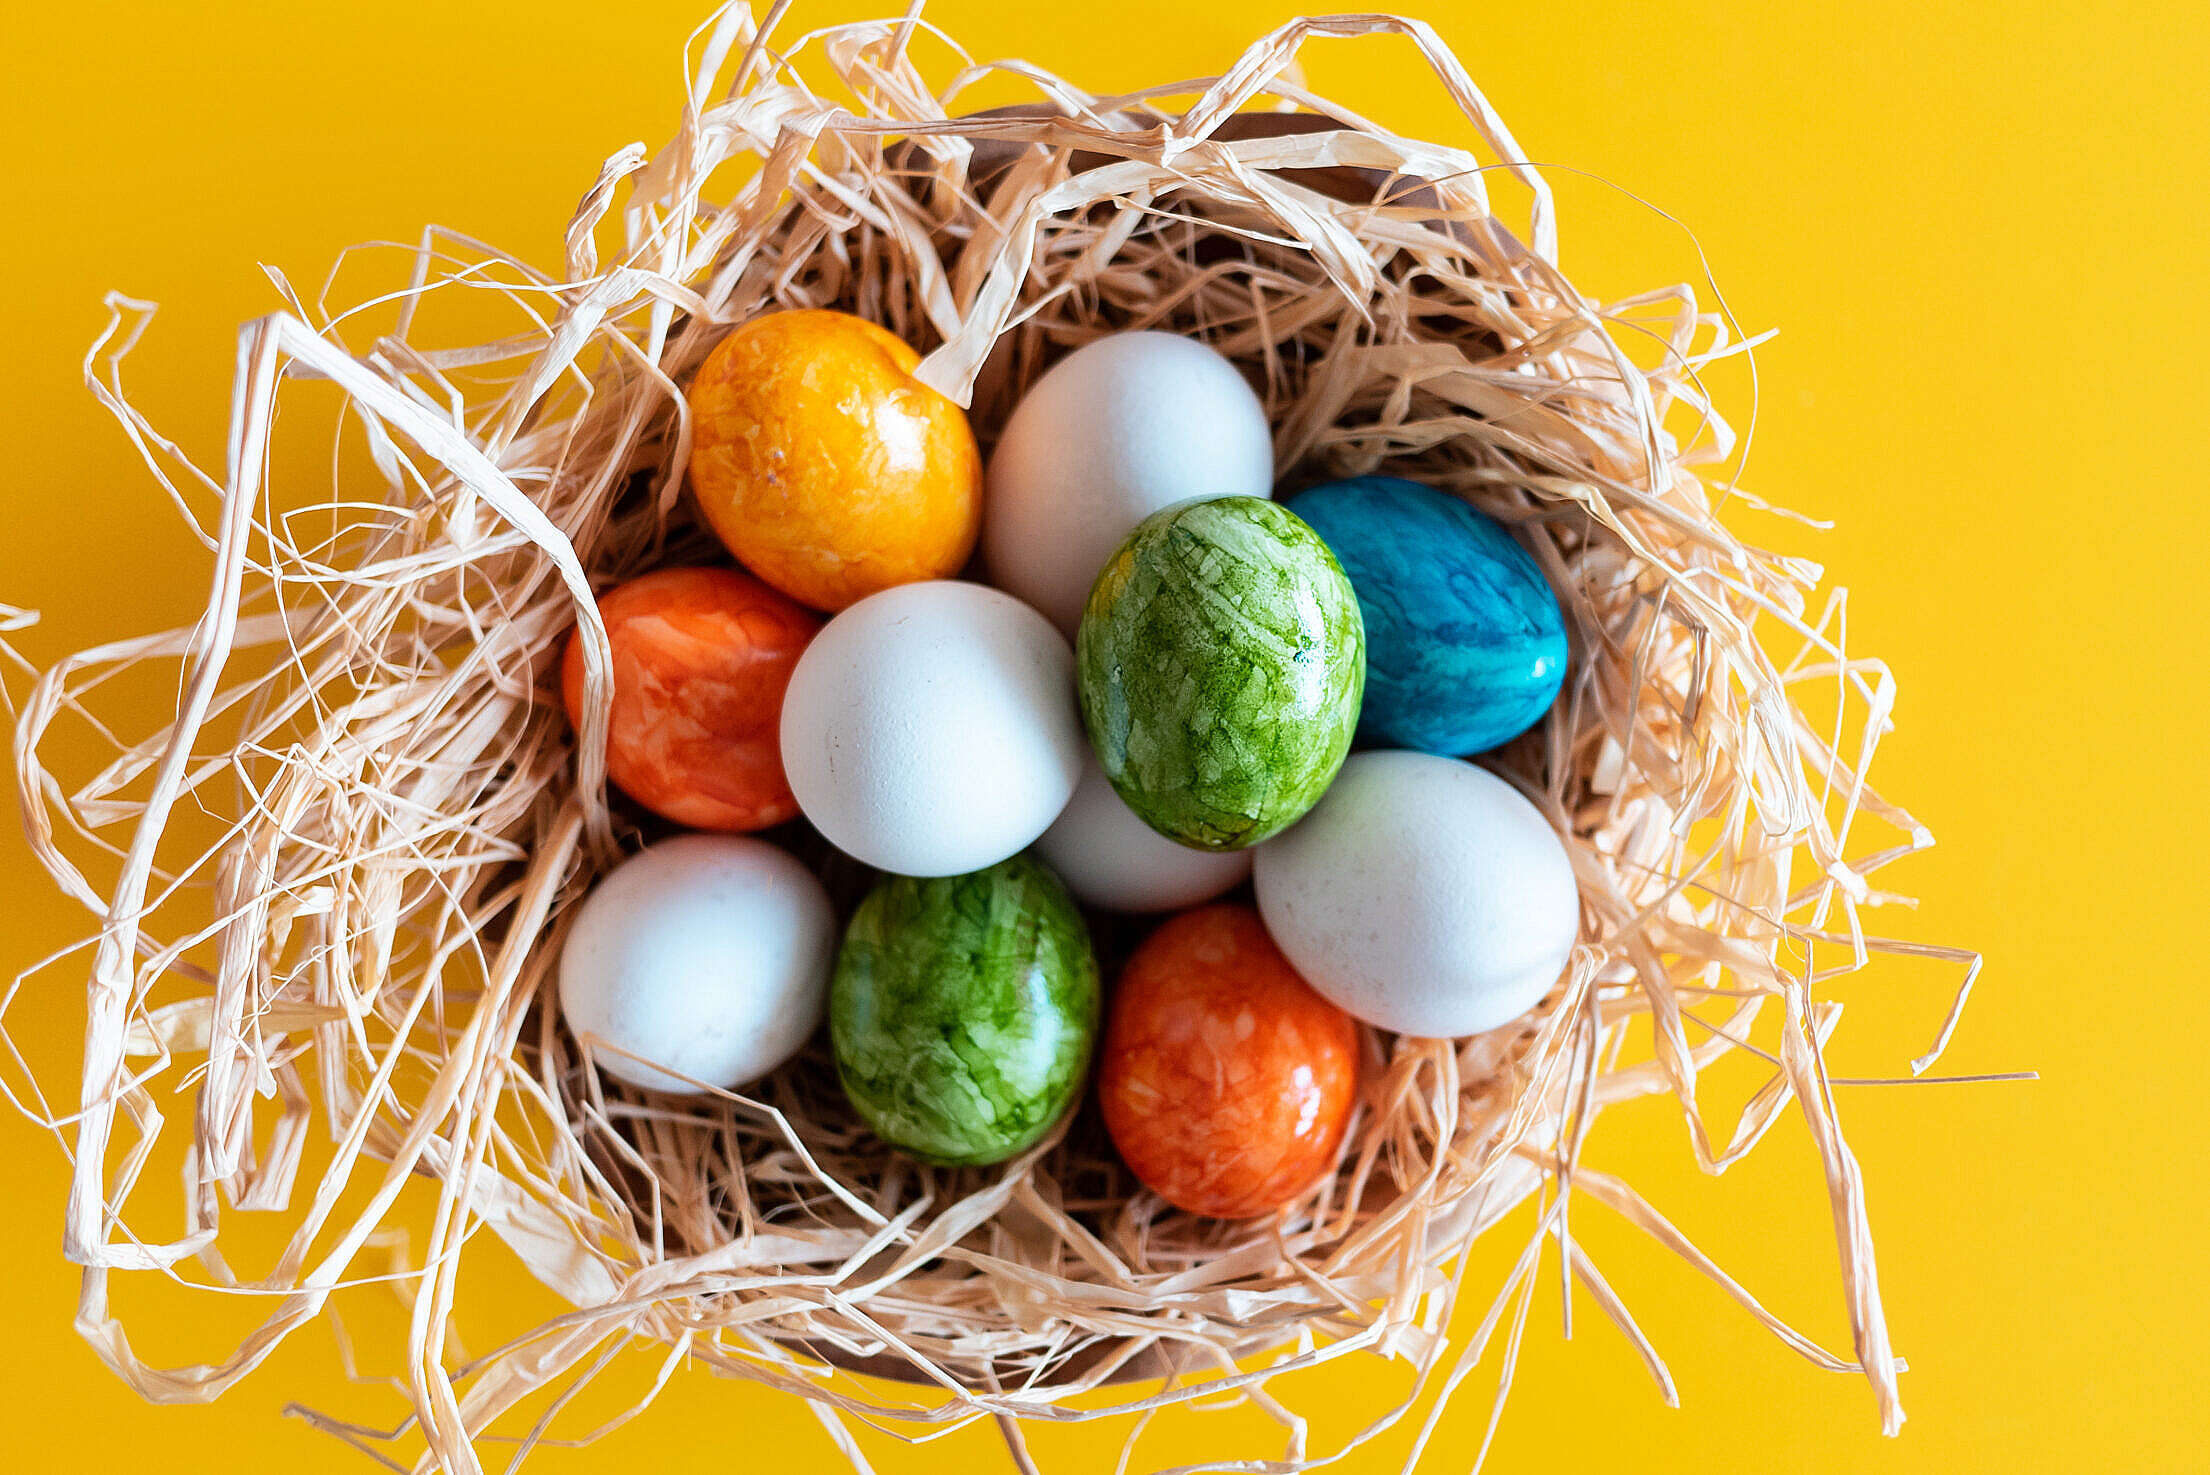 White & Colored Easter Eggs Free Stock Photo